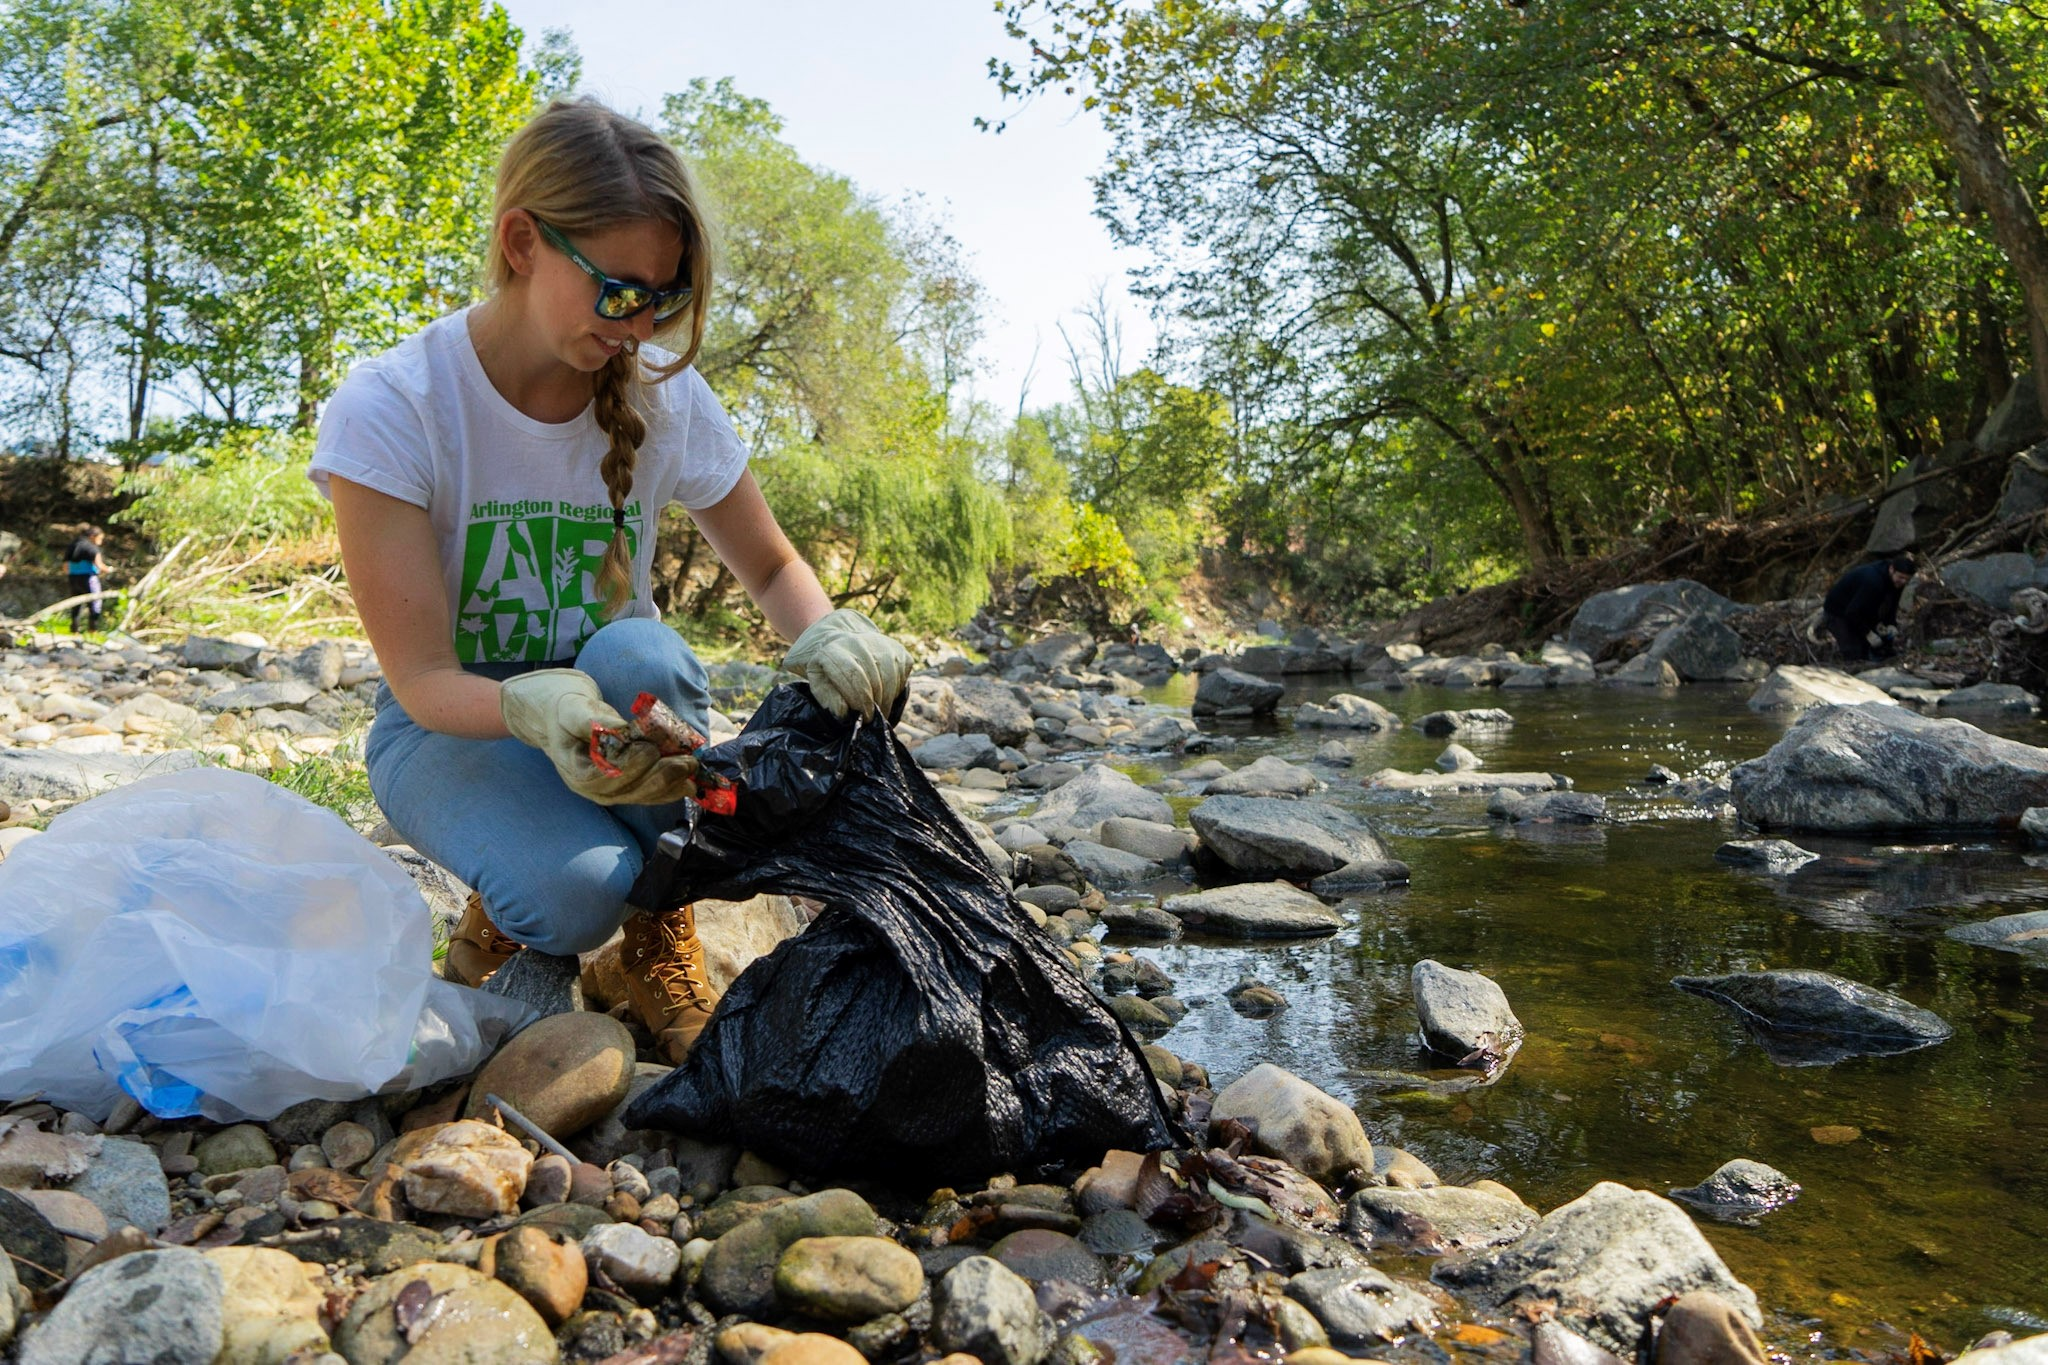 A woman kneels next to a stream putting trash into a trash bag.